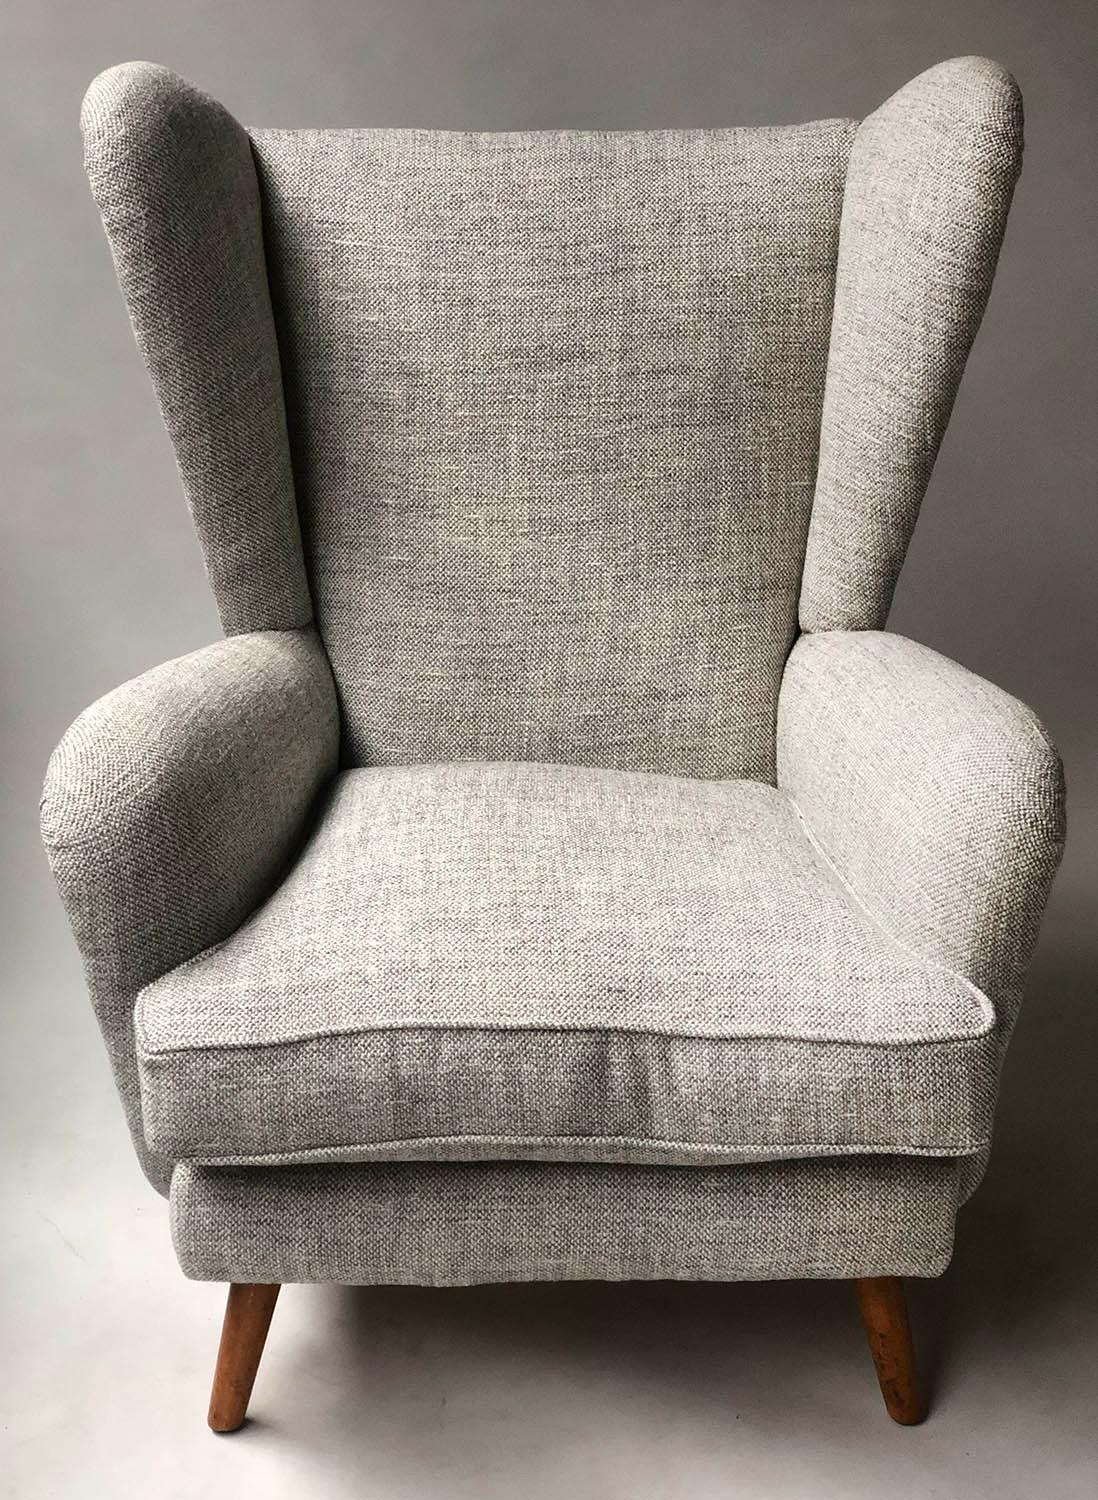 HOWARD KEITH ARMCHAIR, 1950's lounge chair newly upholstered in oatmeal soft tweed with splay - Image 2 of 5